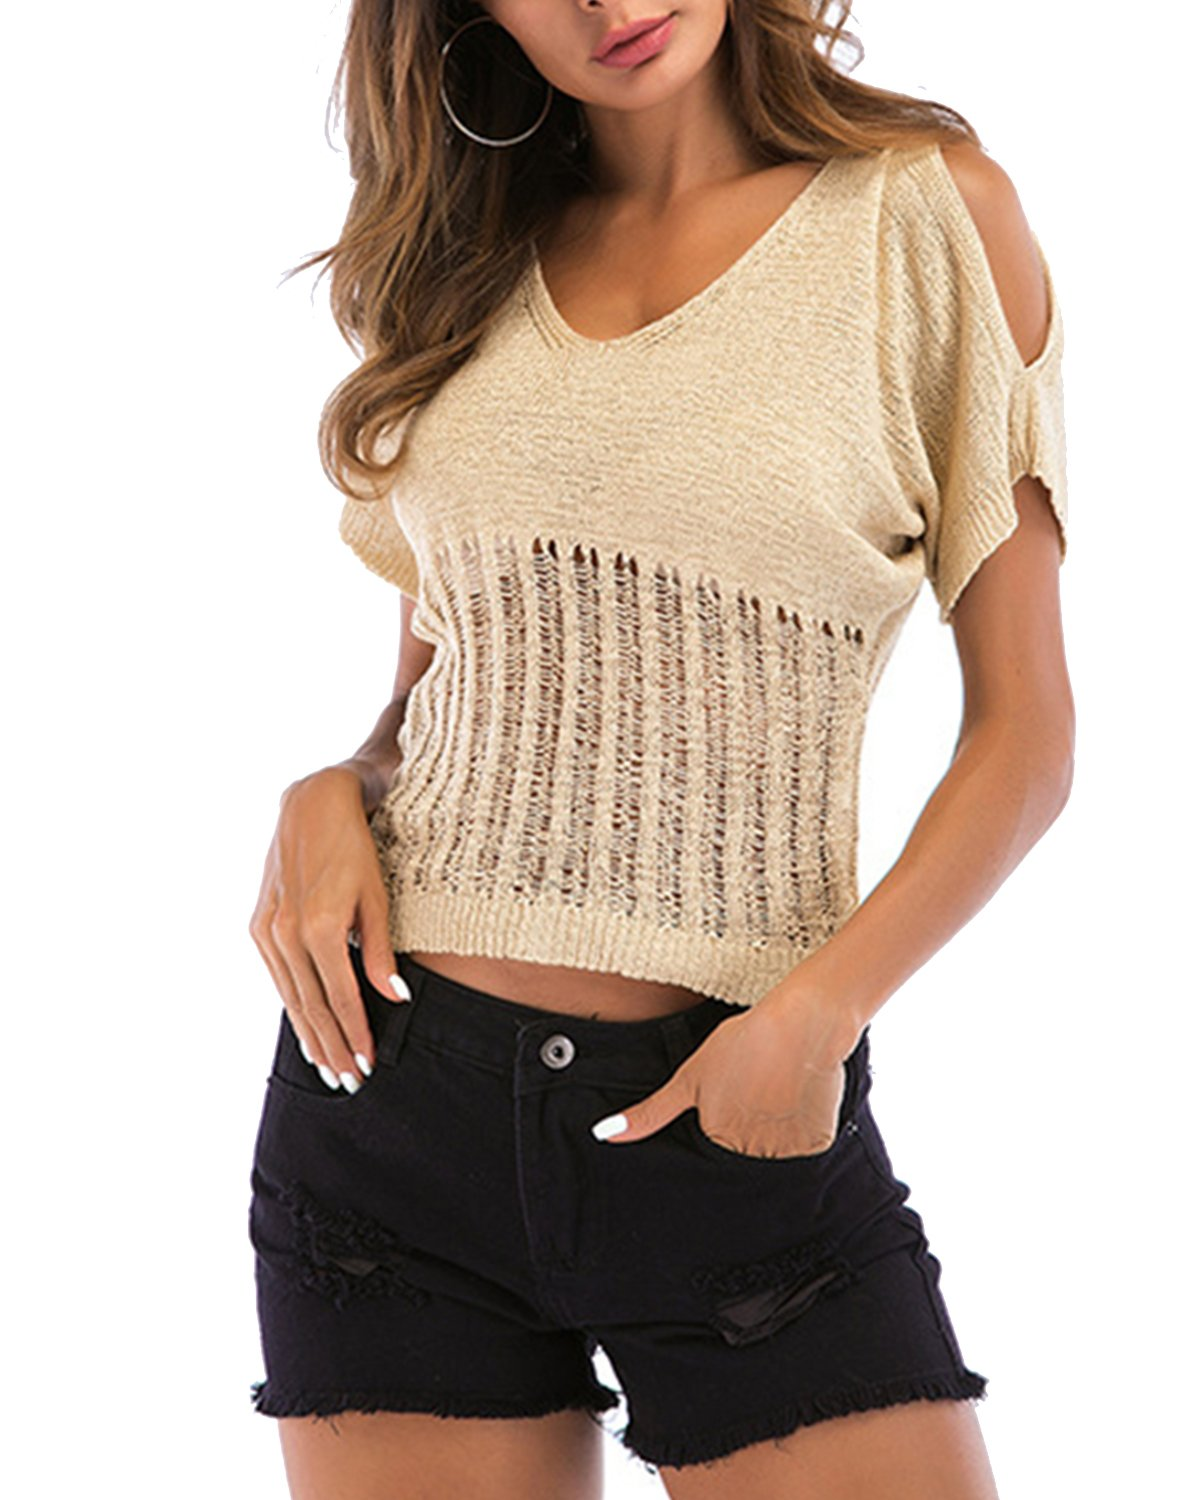 ZAFUL Women Short Sleeve Casual Crop Top Knitted Sweater Pullover Tops T-Shirt Blouse